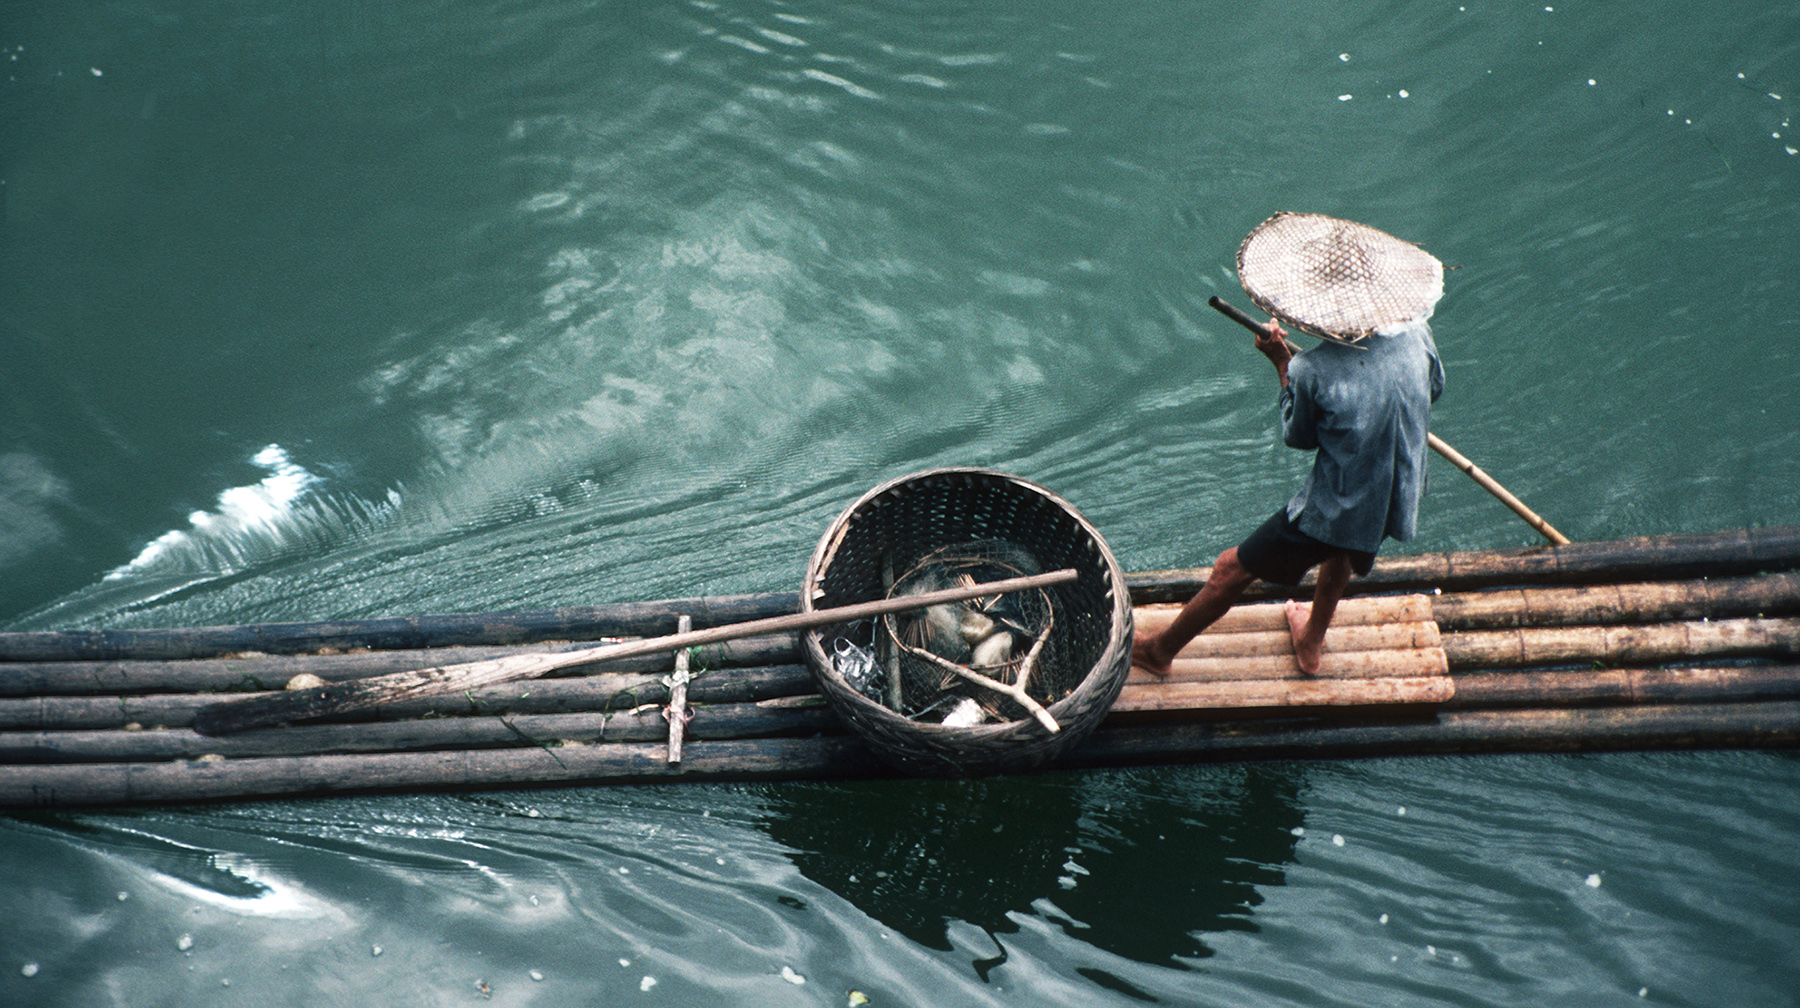 Sonia Costa_The raft, Guilin China